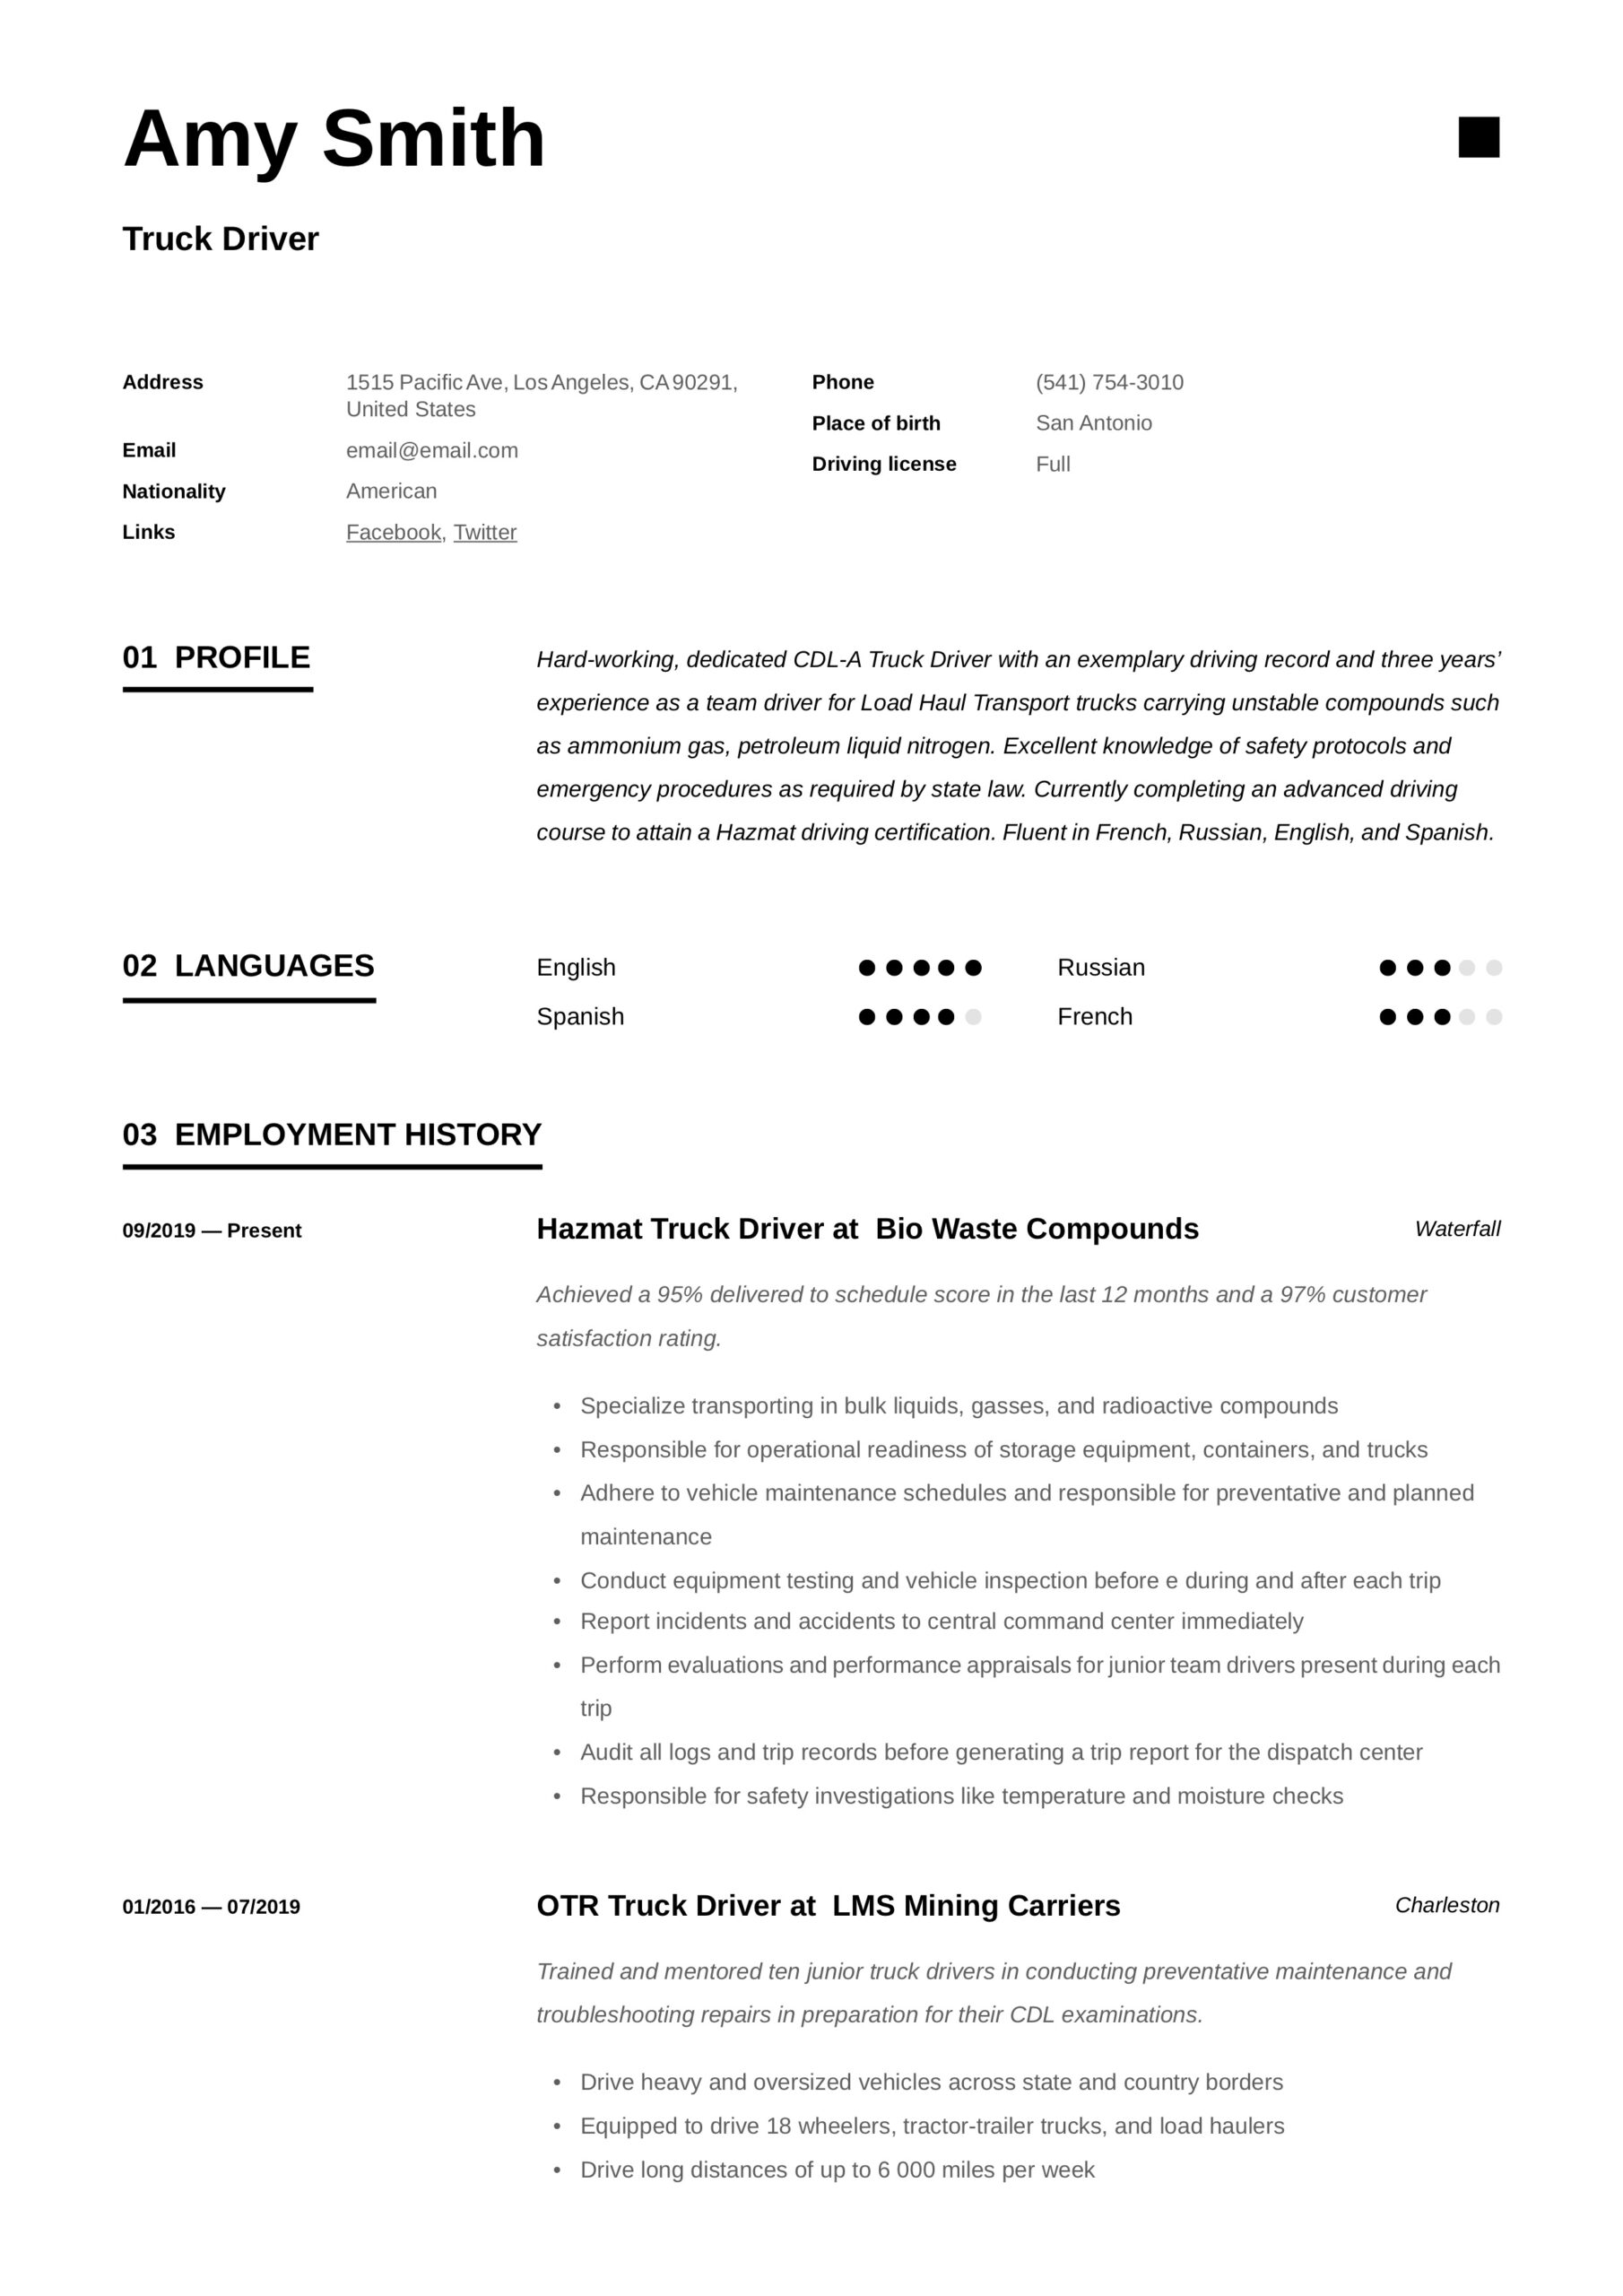 truck driver resume writing guide examples otr project management buzzwords for interior Resume Otr Truck Driver Resume